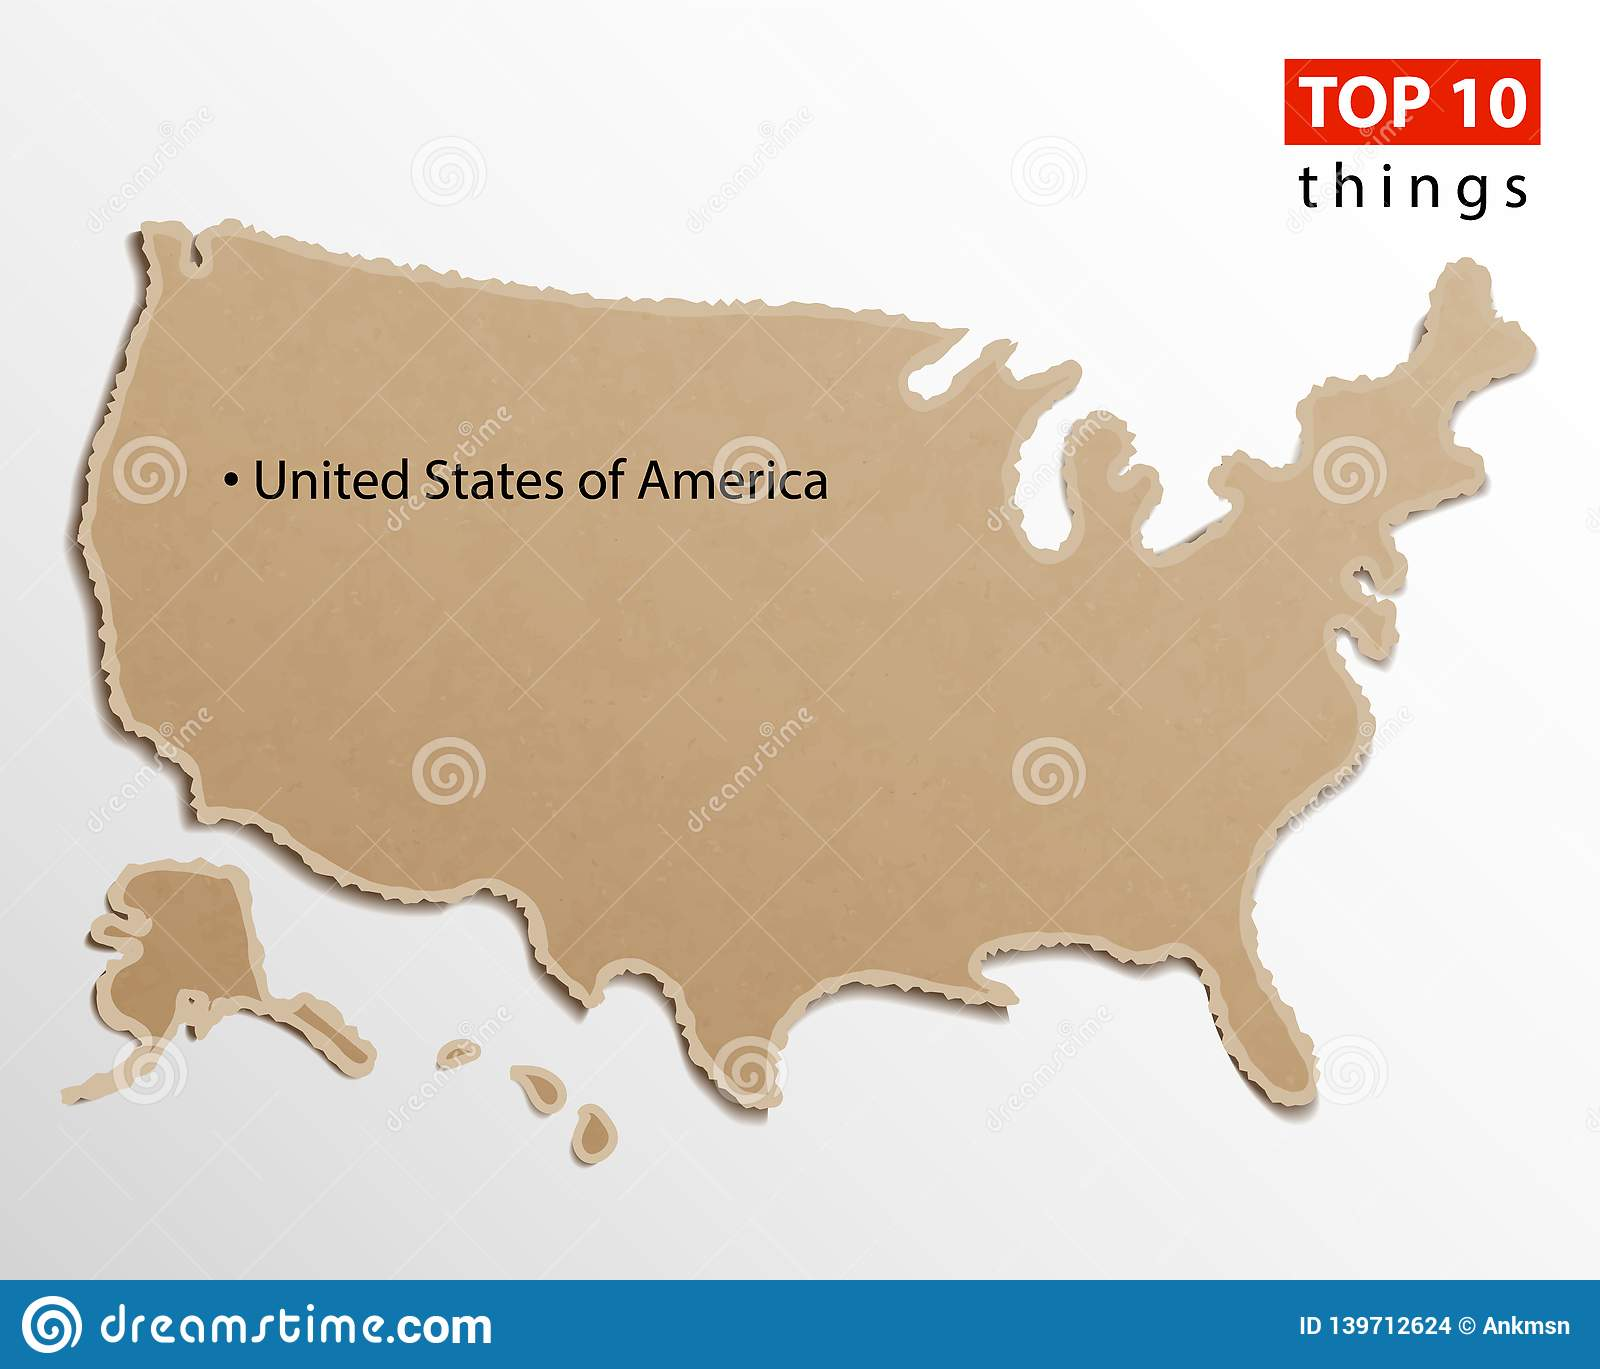 Maps Of United States America on